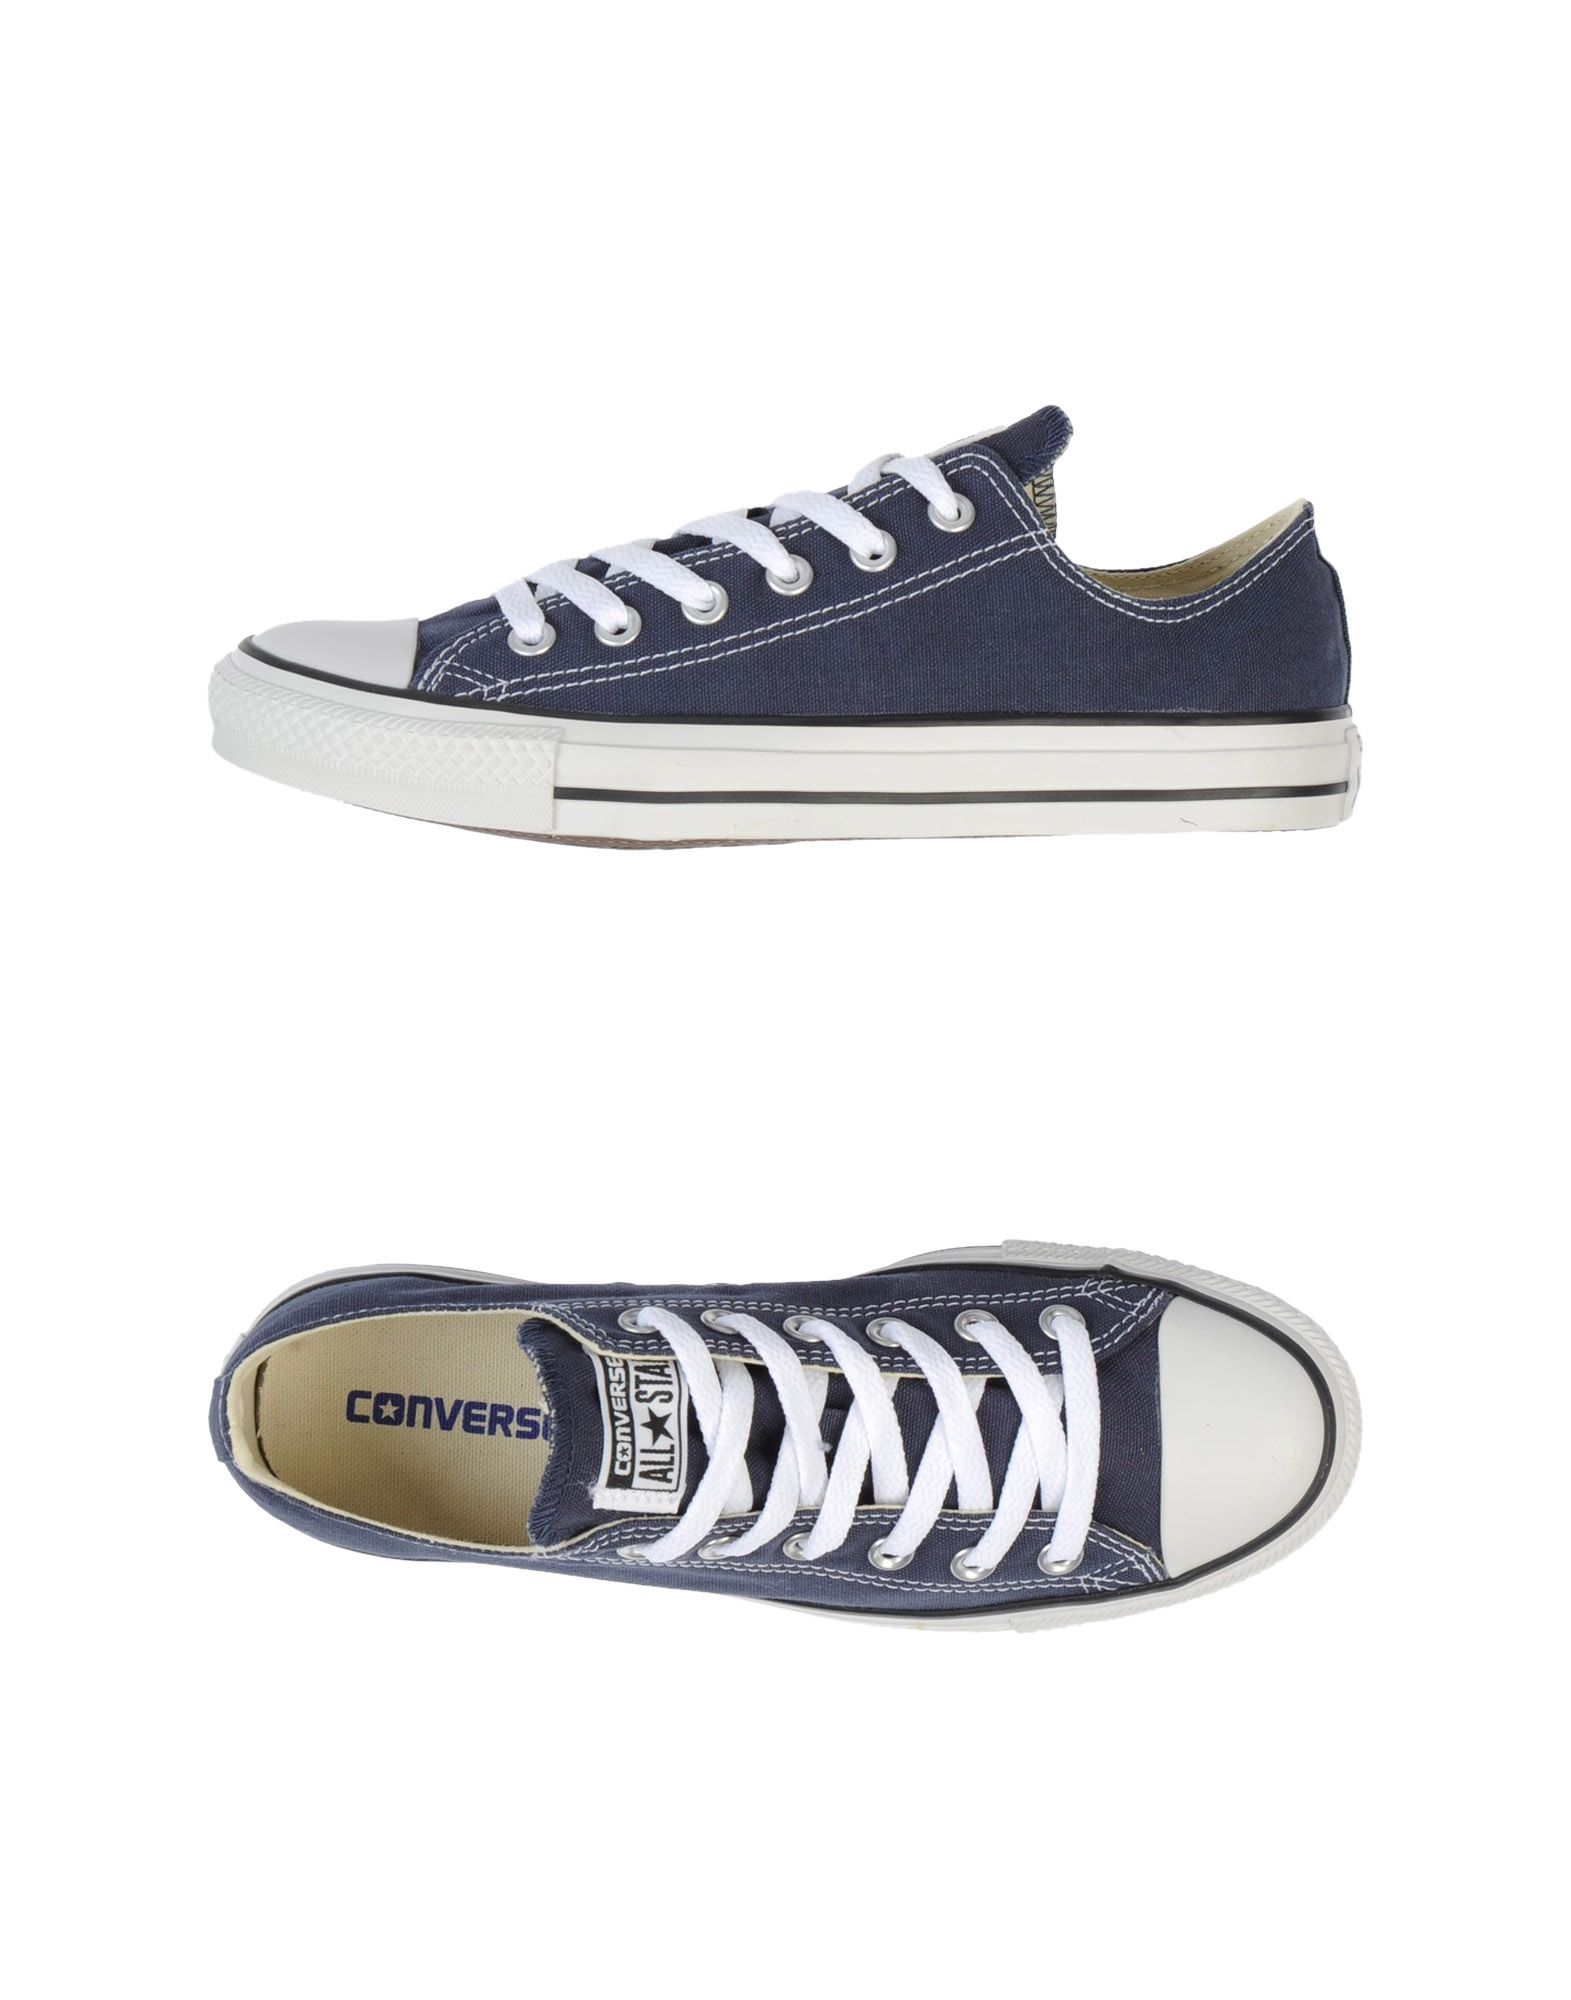 Baskets Converse All Star All Star Hi-Ox - Homme - Baskets Converse All Star  Bleu foncé Chaussures casual sauvages